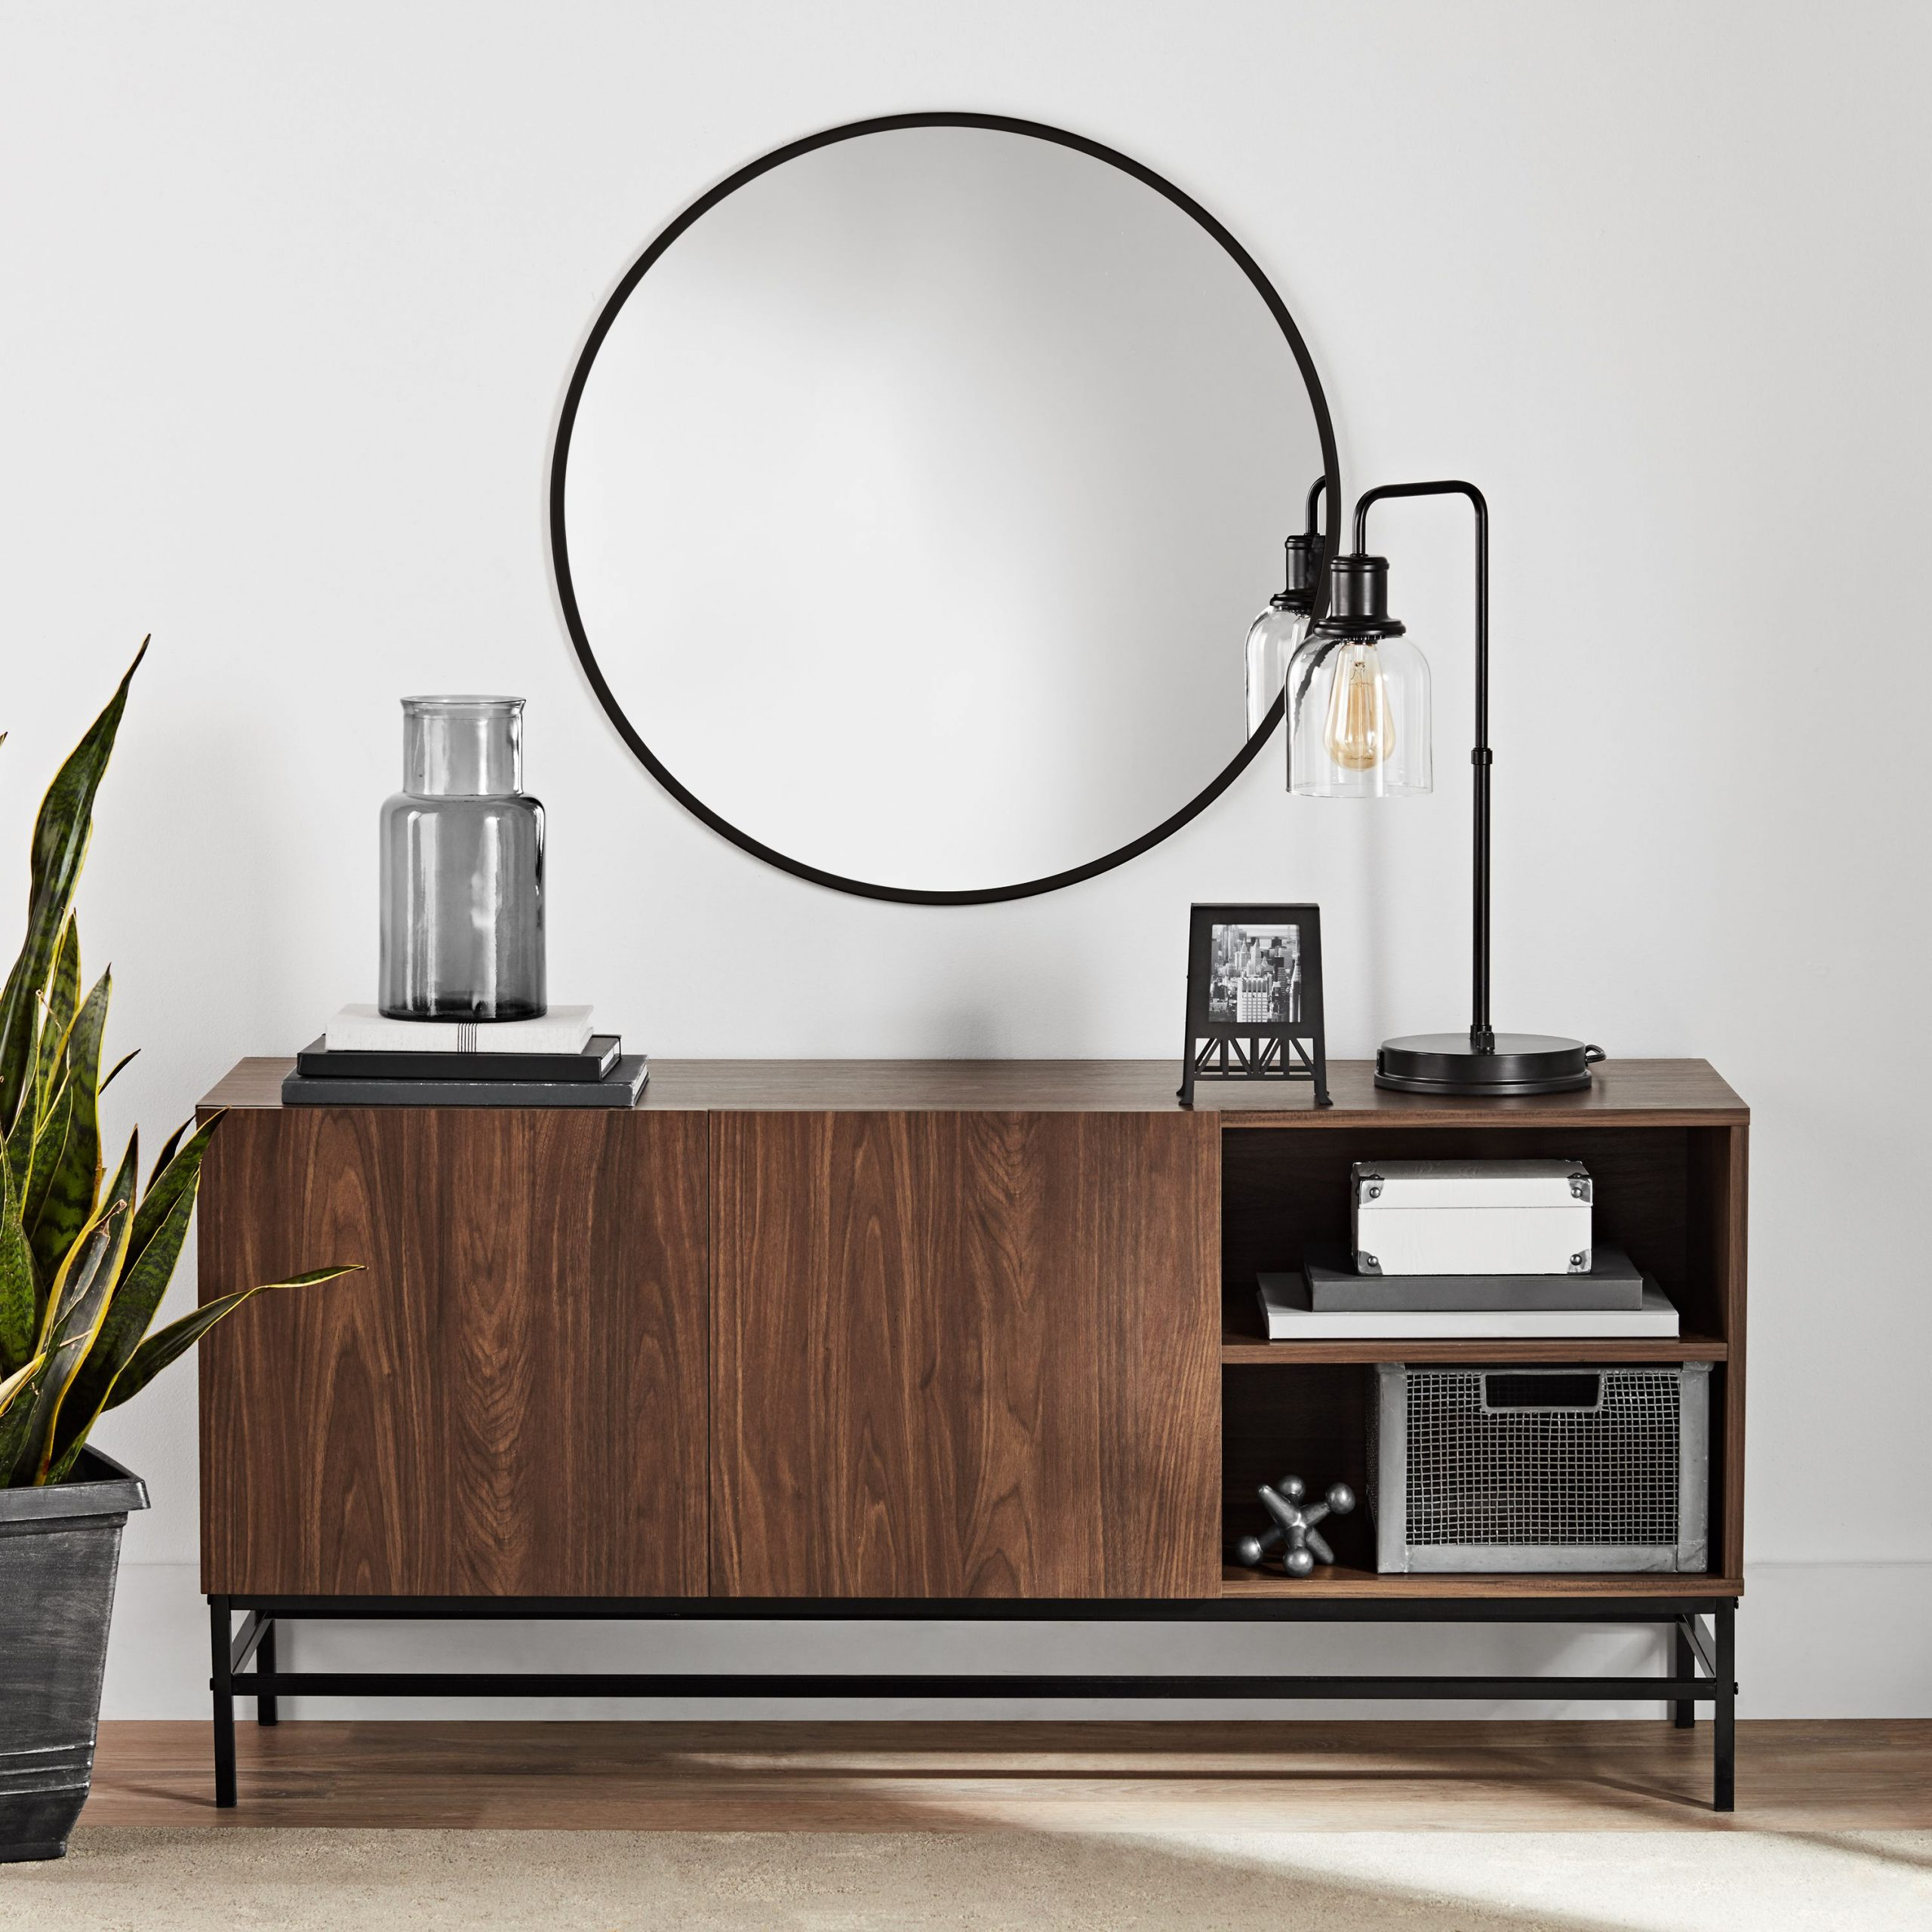 Mainstays Sumpter Park Console Table, Canyon Walnut Regarding Mainstays Parsons Tv Stands With Multiple Finishes (View 4 of 20)